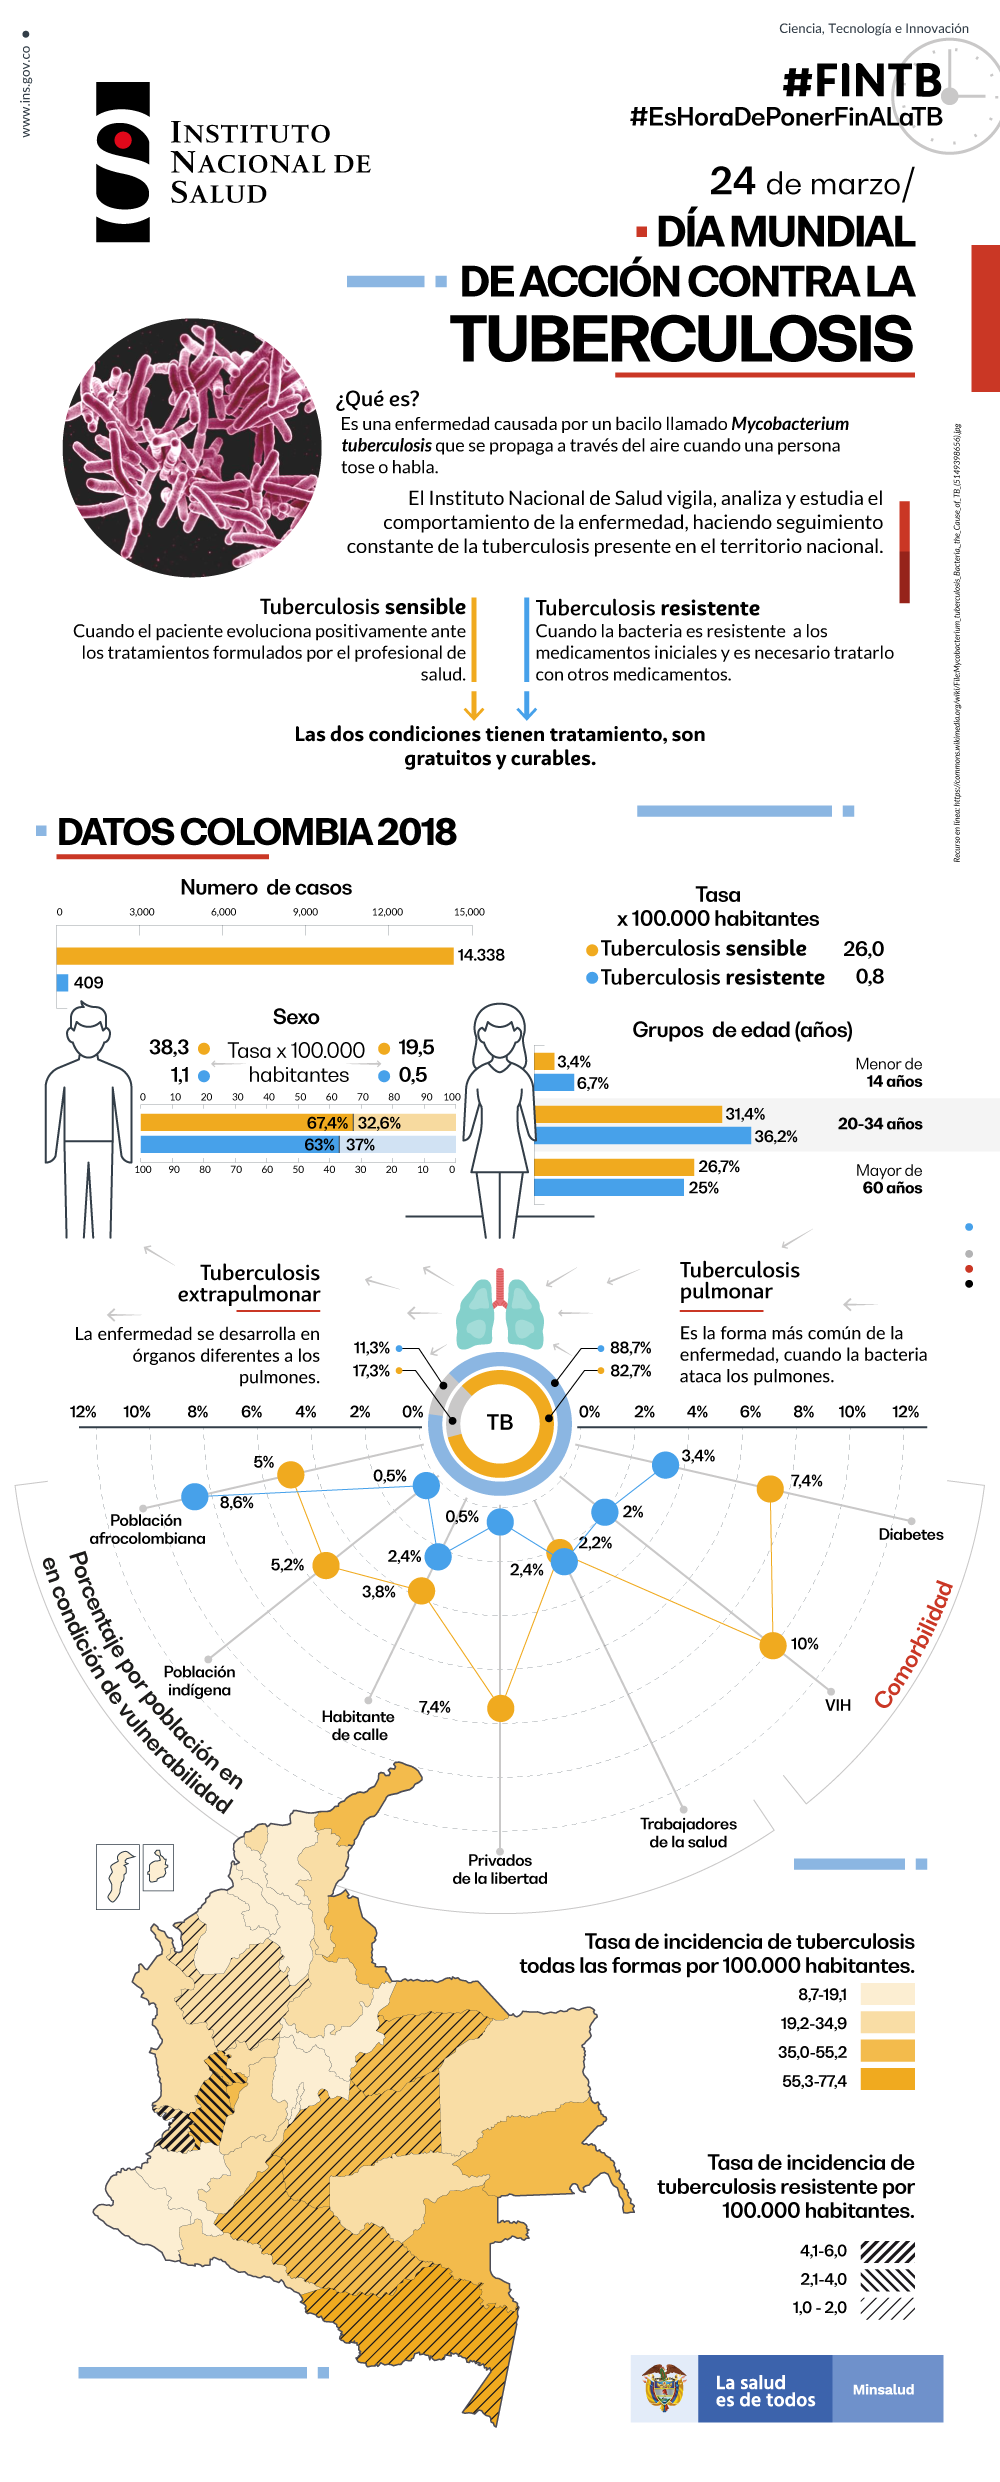 https://www.ins.gov.co/Noticias/Tuberculosis/FINTB-INS-INSTITUTO-NACIONAL-COLOMBIA-TUBERCULOSIS-2019.png